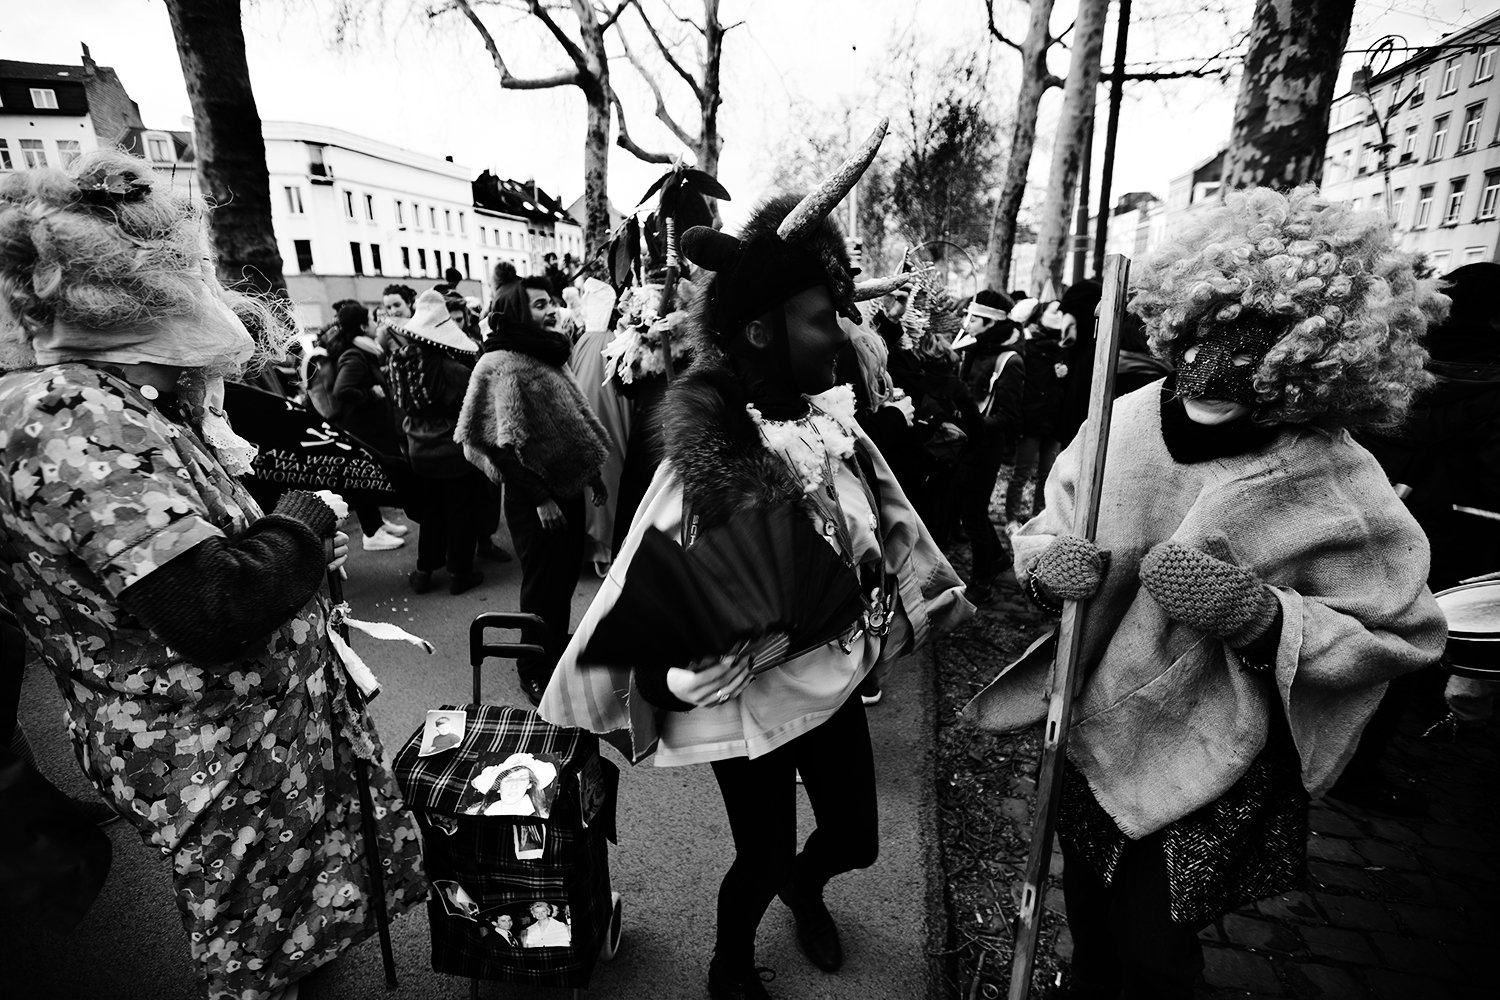 Carnaval sauvage de Bruxelles 2019 (Black & White) by Laurent Orseau #20